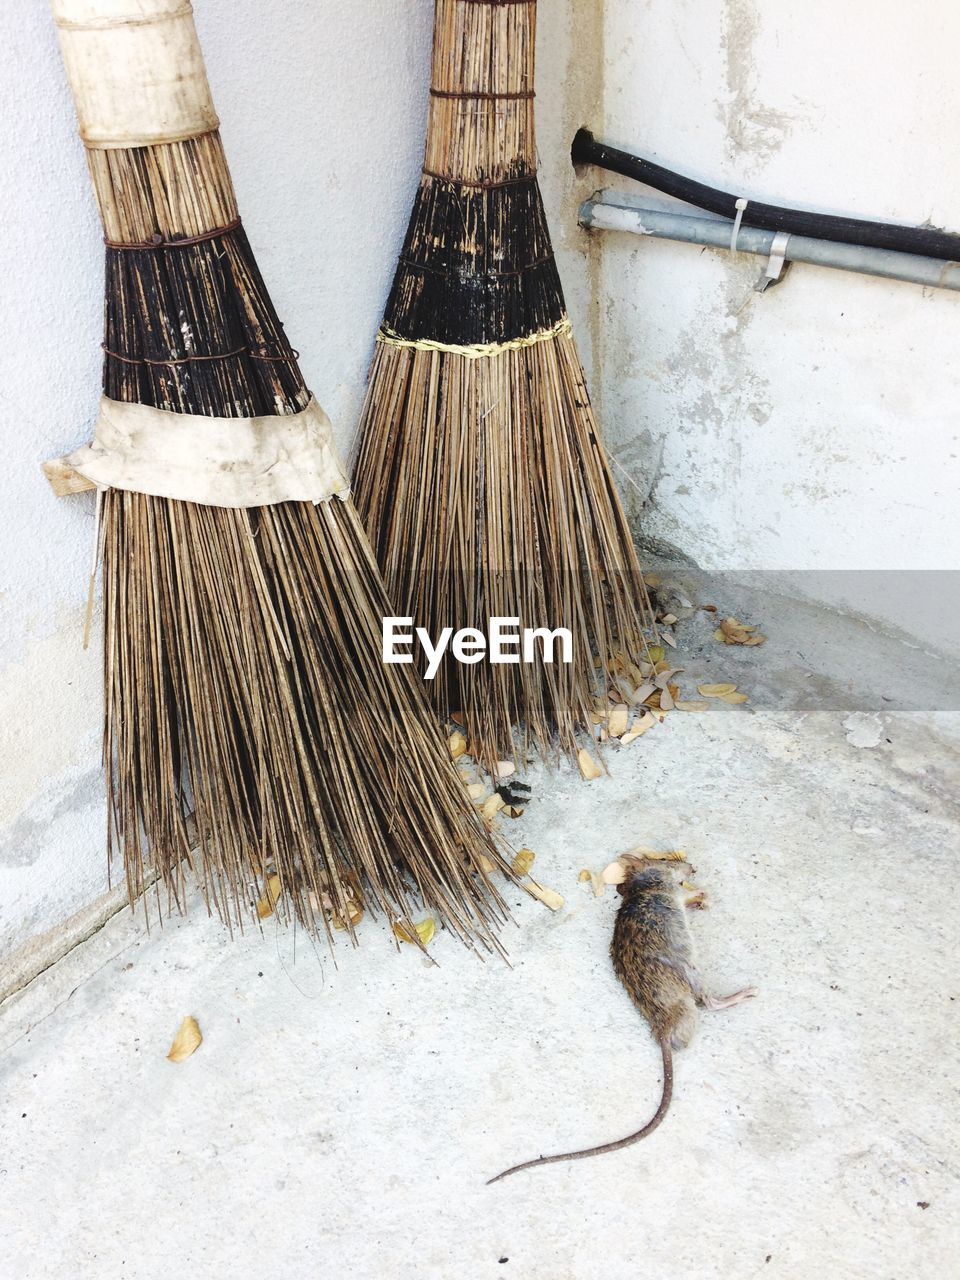 Dead rat by brooms against wall